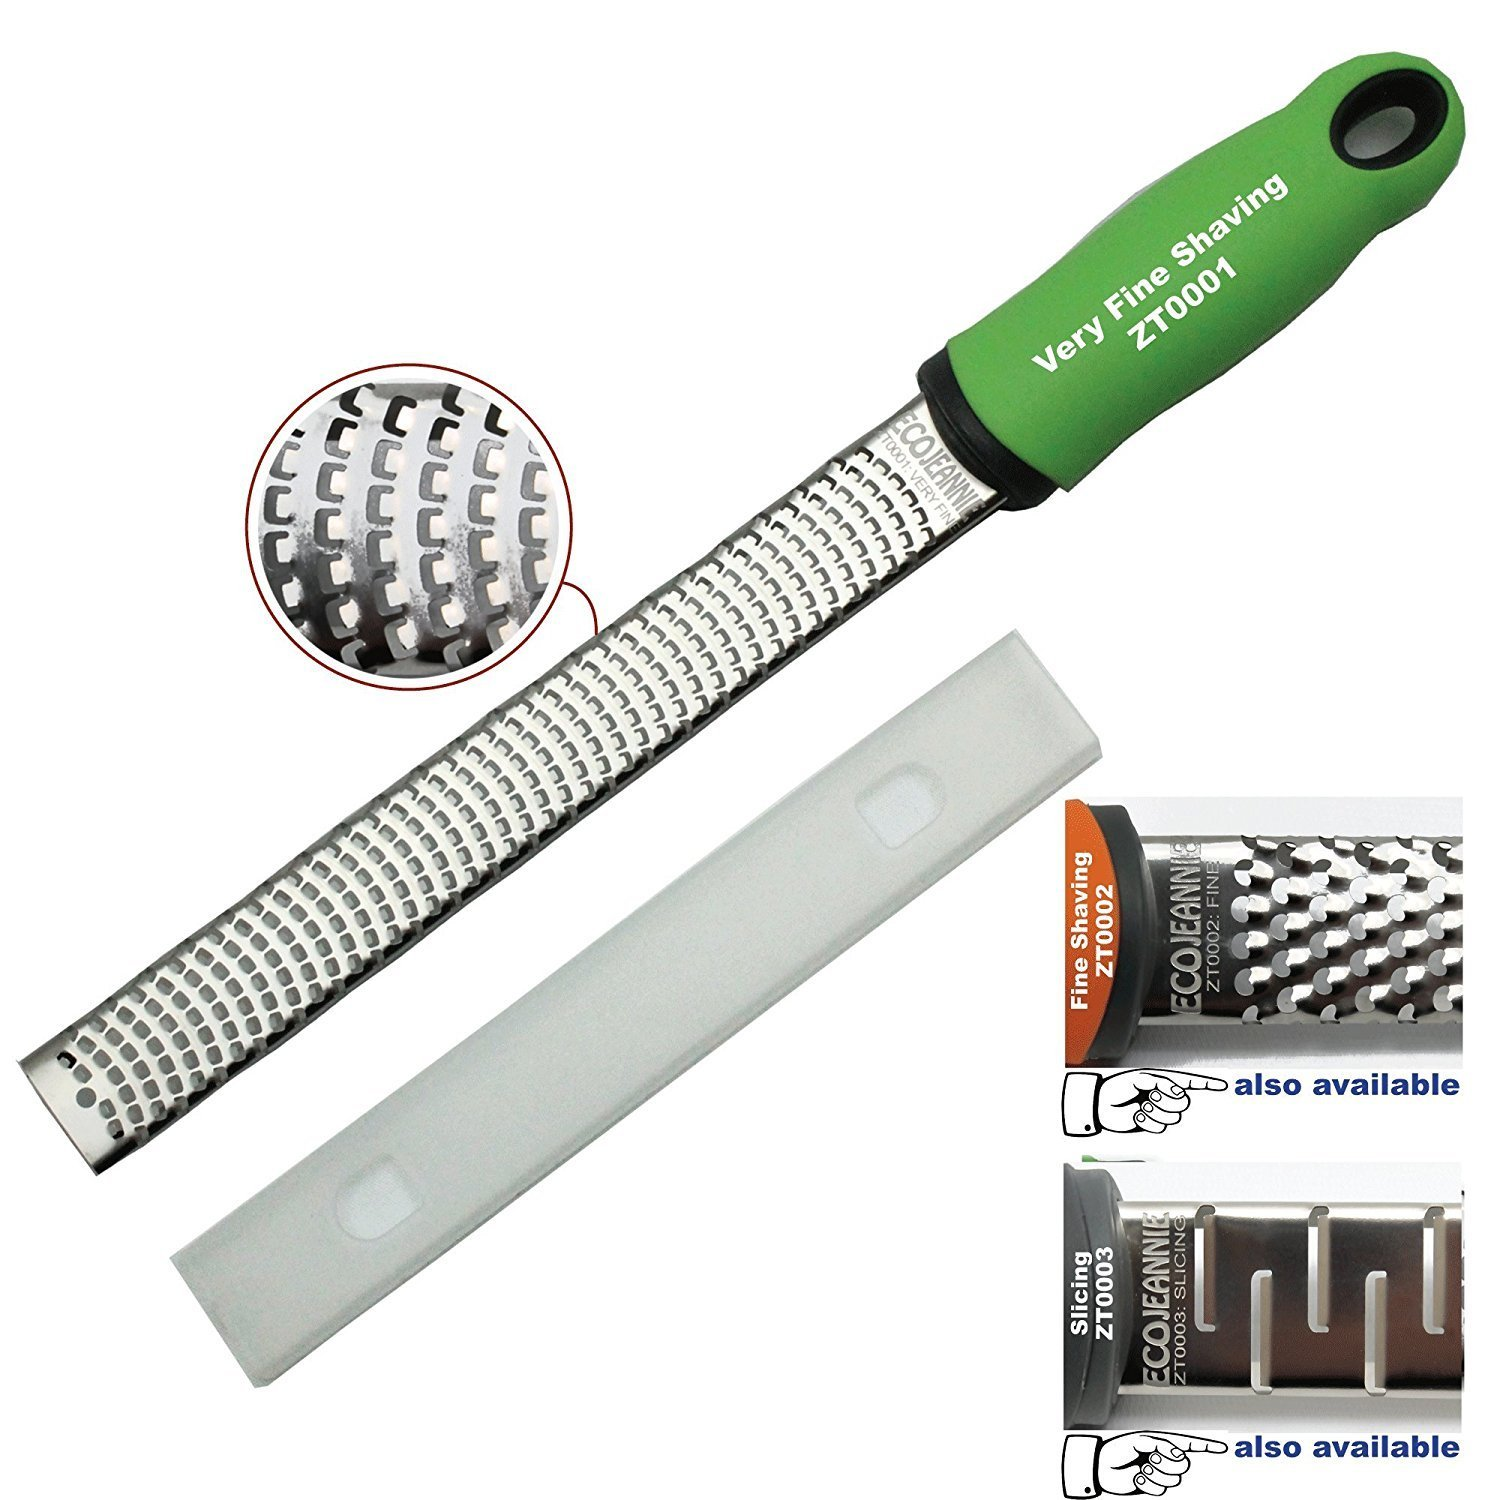 EcoJeannie® Professional Hand Held Cheese Grater Lemon Zester for Very Fine Shavings, Heavy Duty, Commercial Grade, Non-Slip Easy-Grip Handle, Stainless Steel